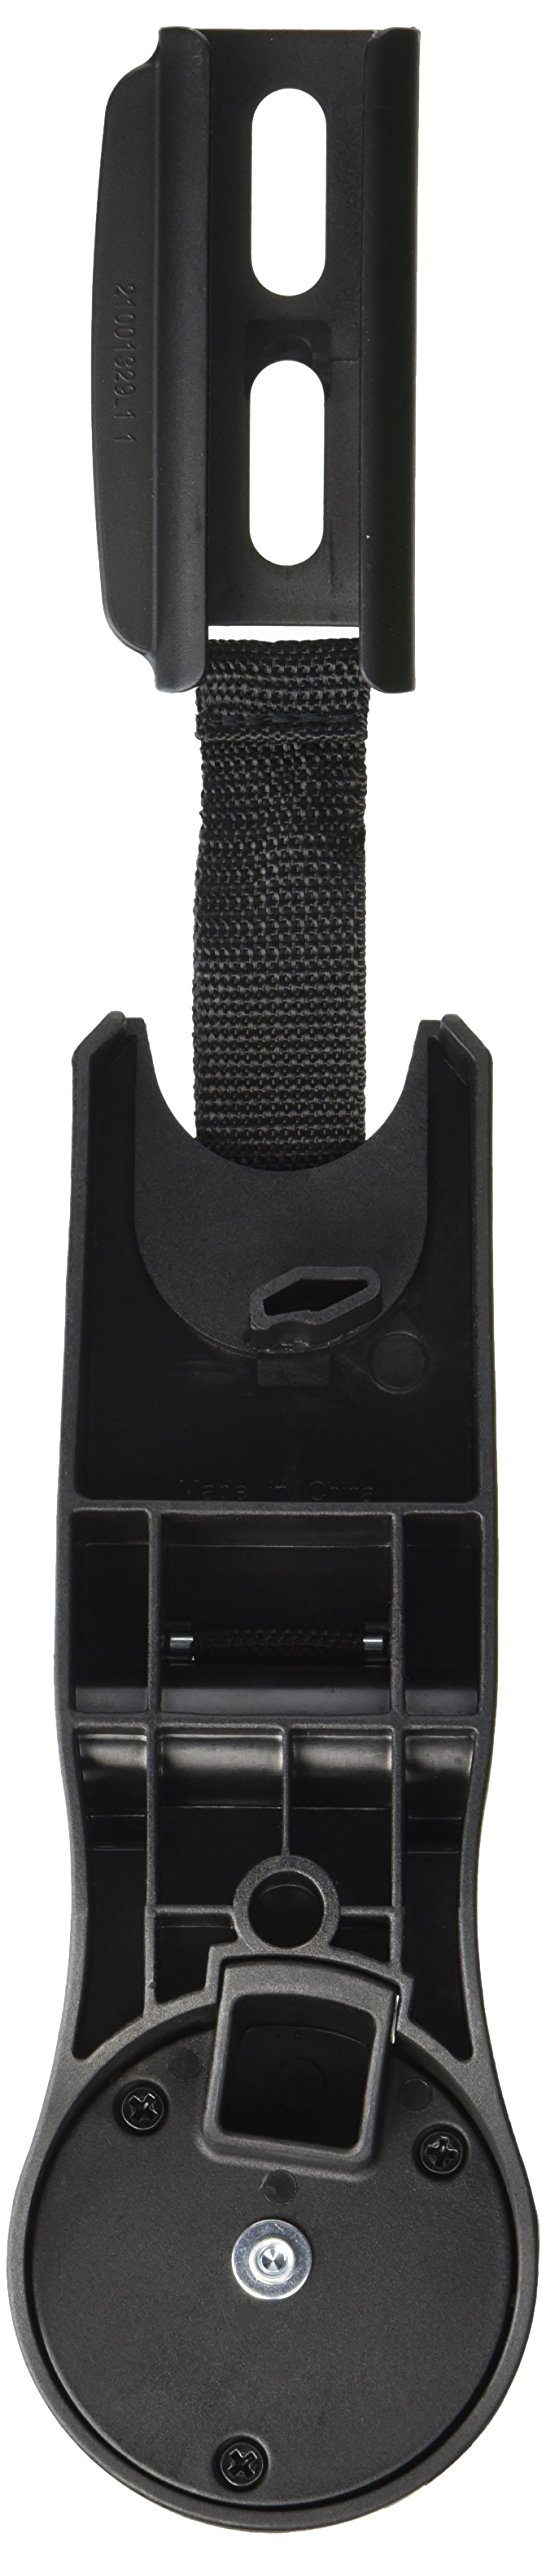 Baby Jogger City Select Lux/Premier Maxi COSI Adapter, Black by Baby Jogger (Image #2)